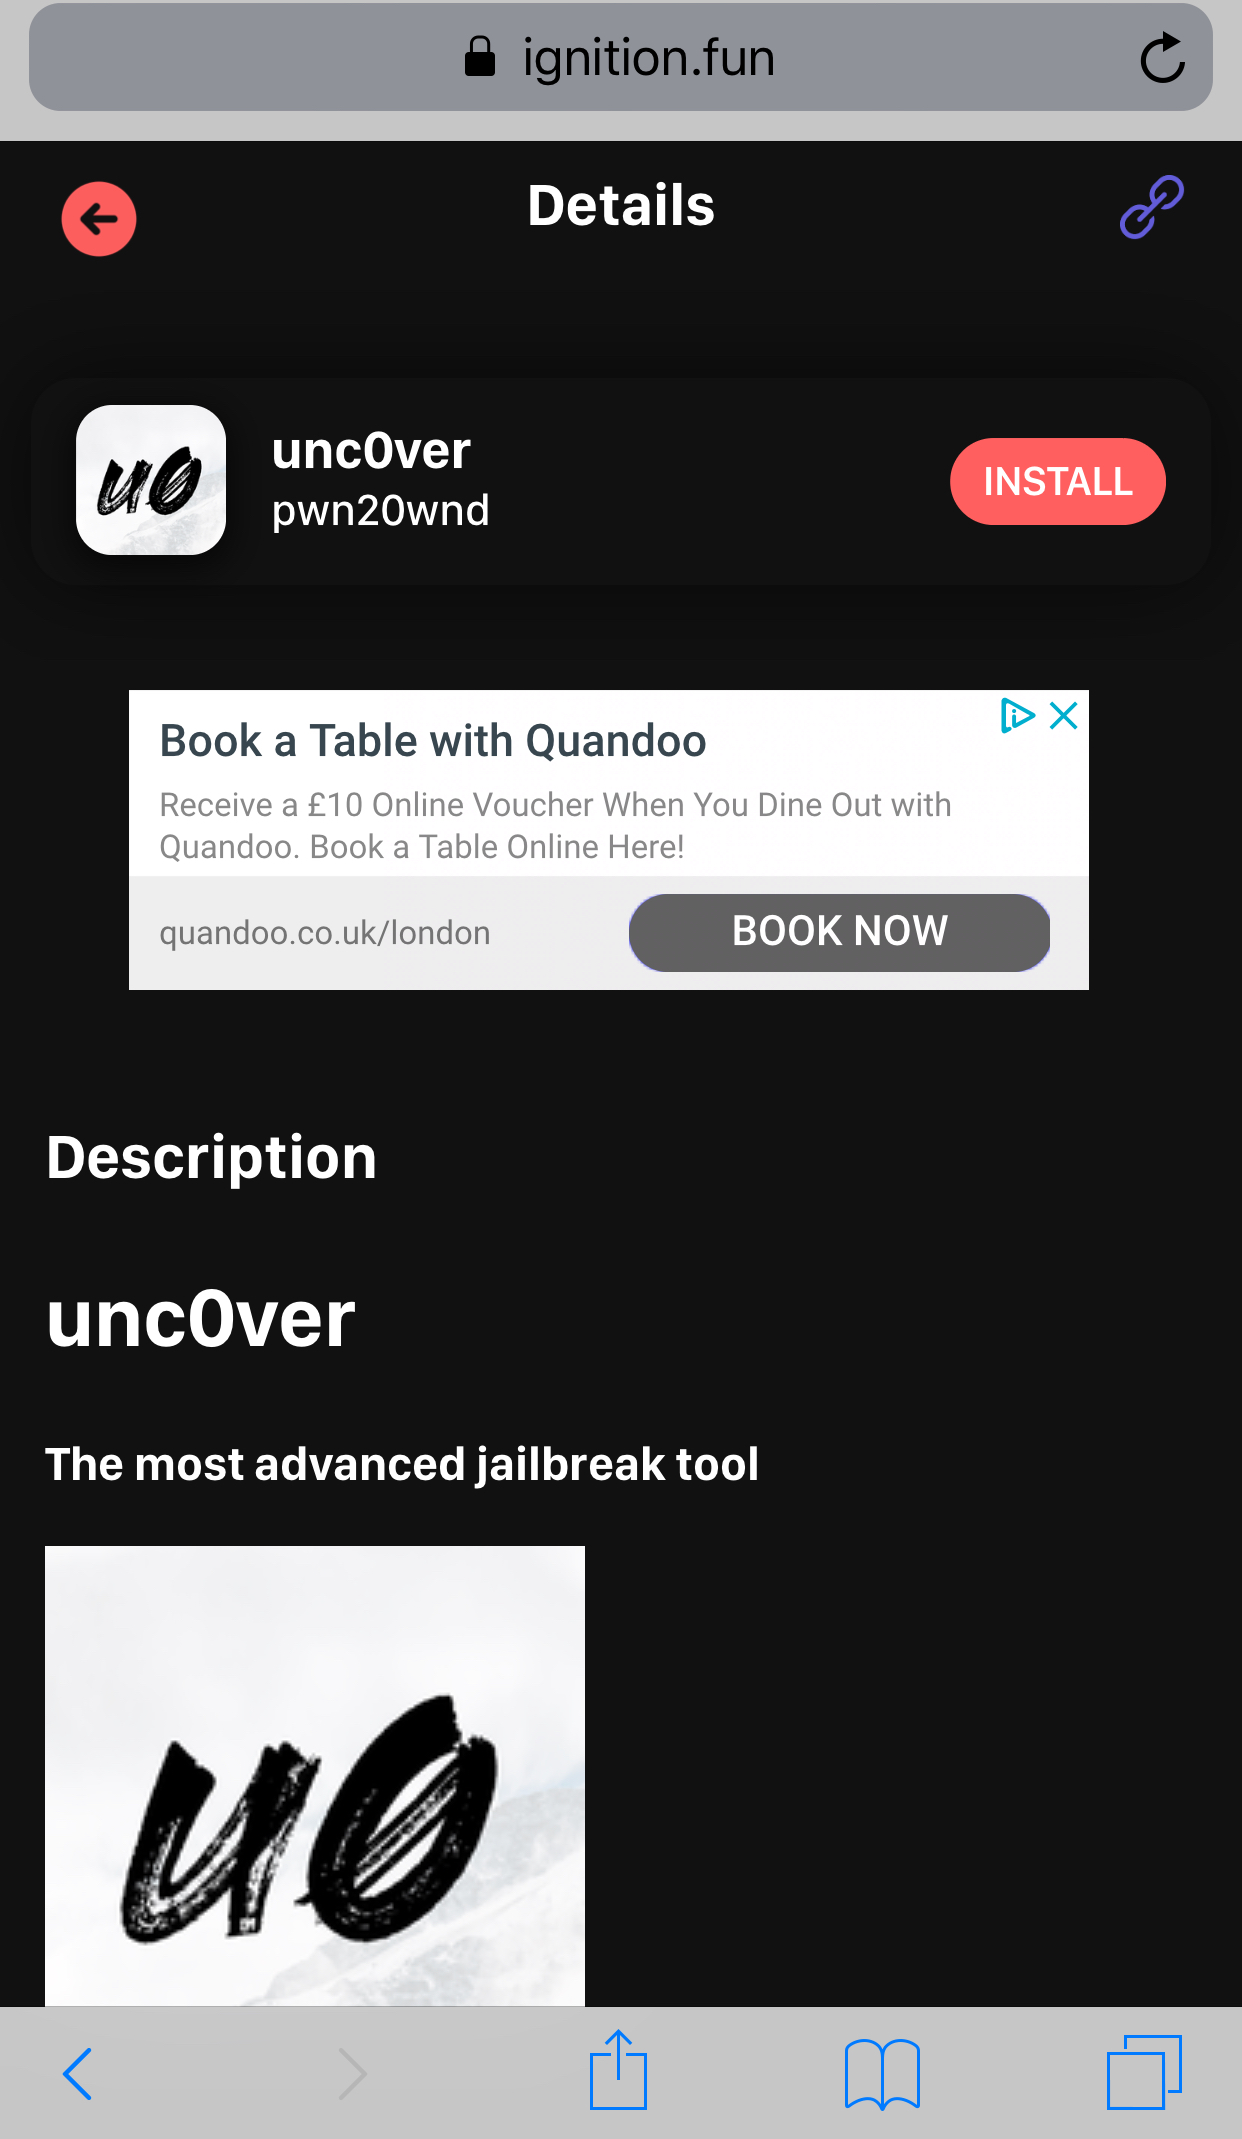 How to install unc0ver Jailbreak without a computer